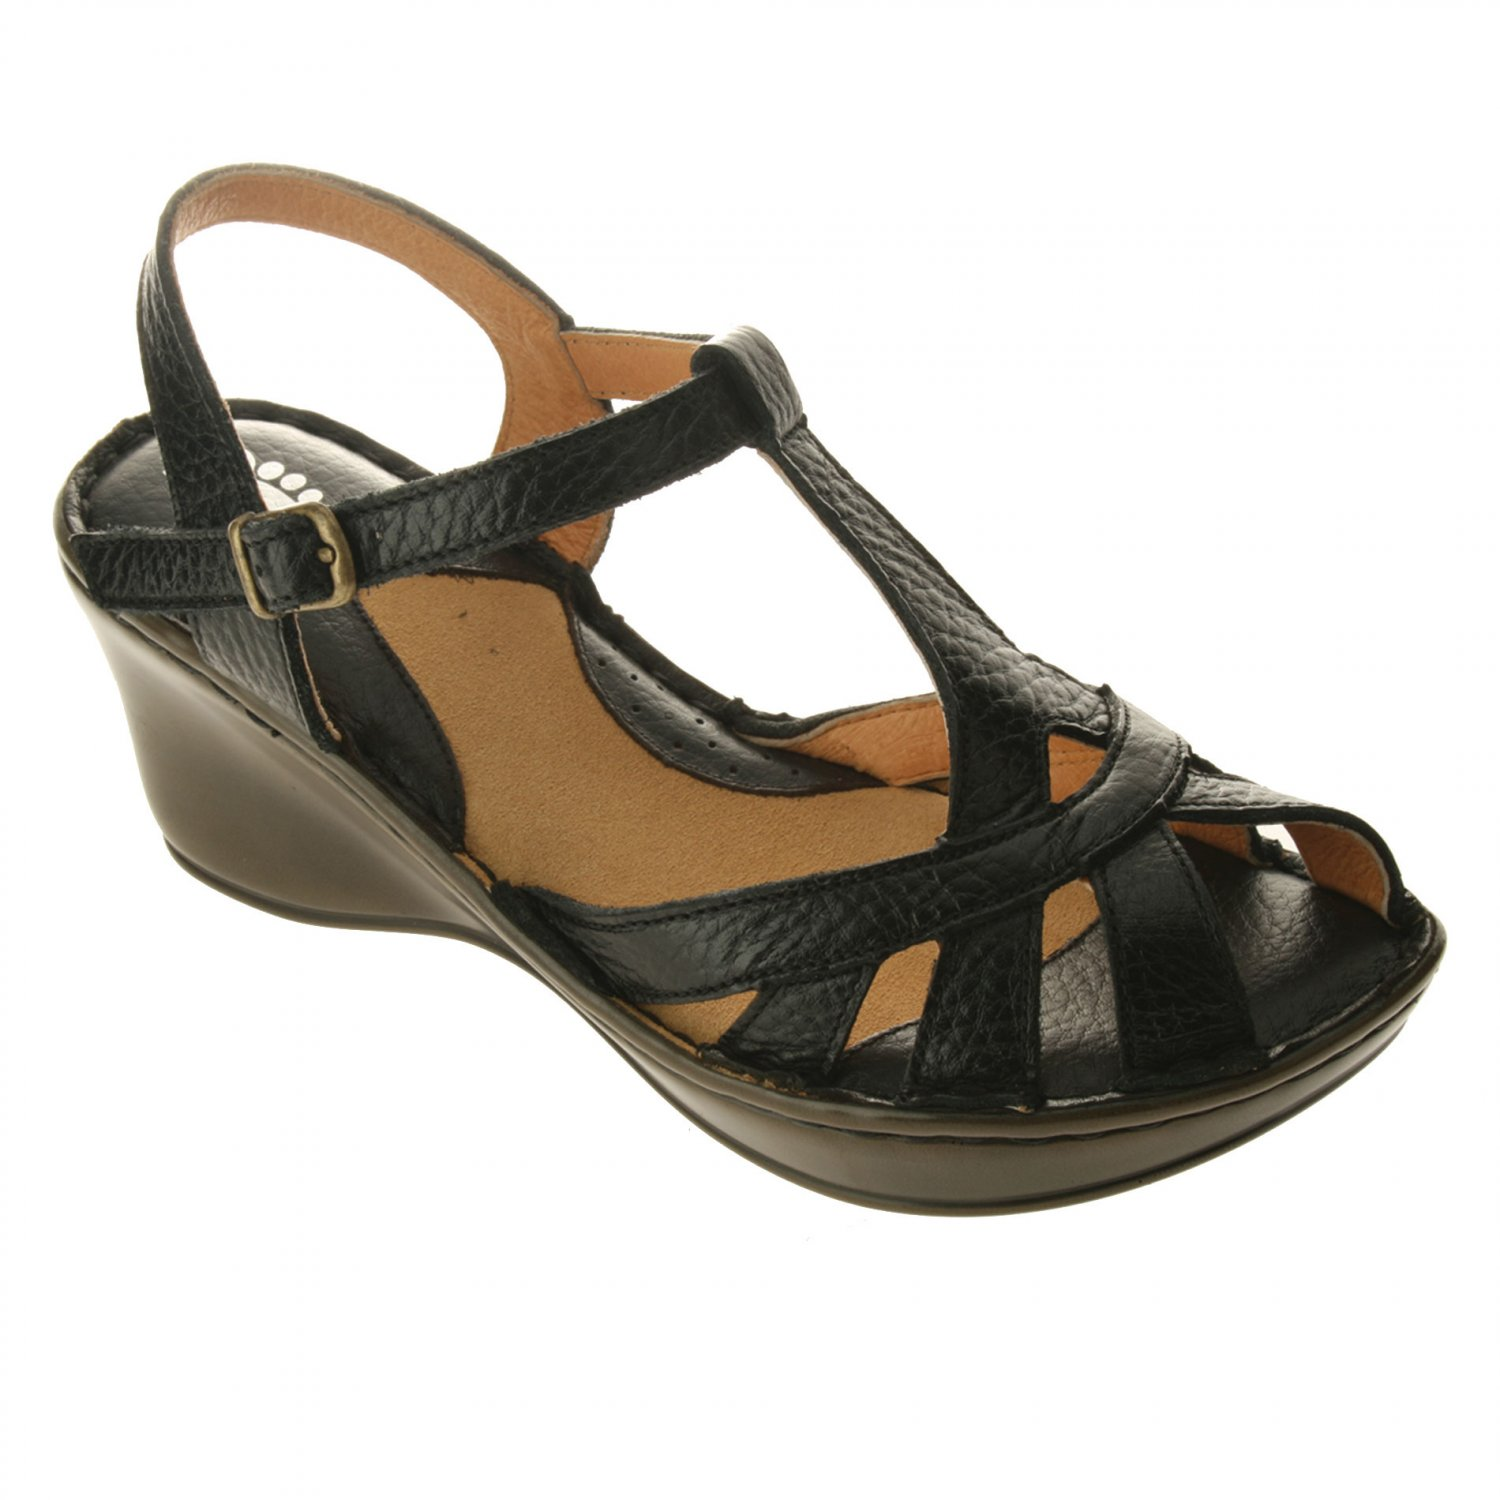 Spring Step SHAUNA Sandals Shoes All Sizes & Colors $1